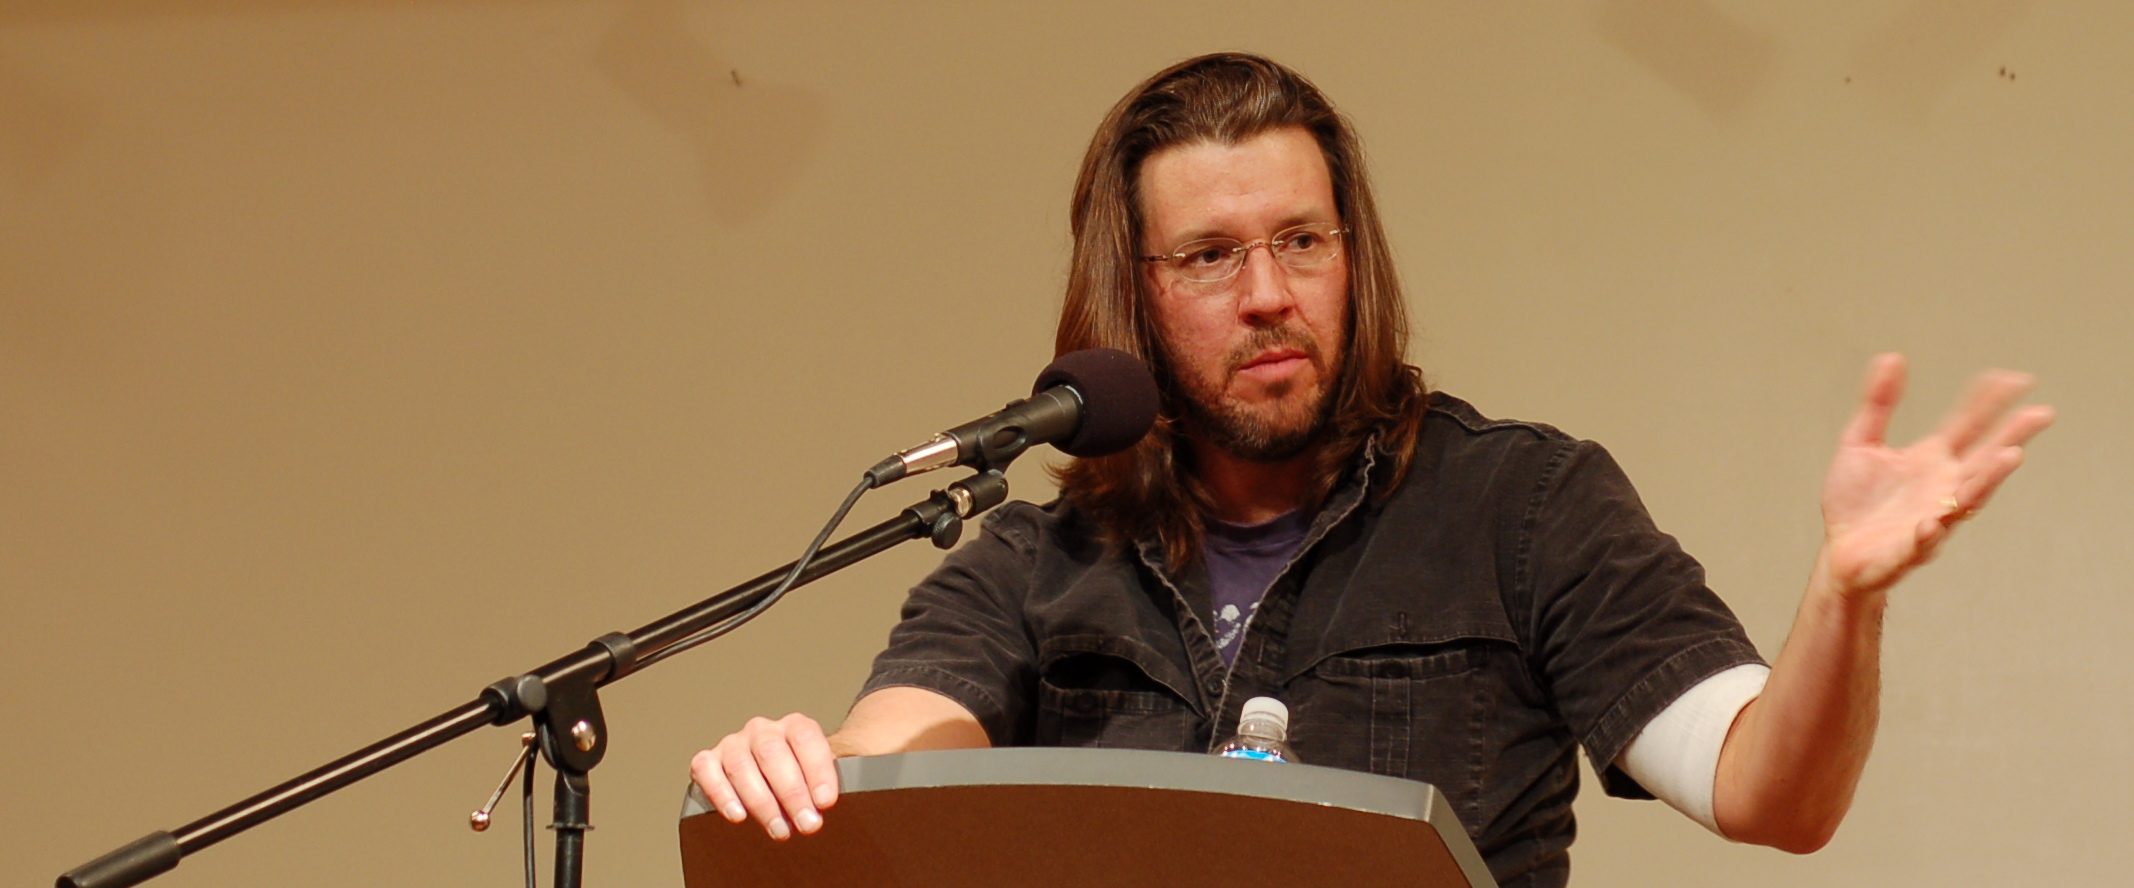 """david foster wallace essay this is water Home news this is water: what david foster wallace wanted us to think about   titled """"this is water,"""" he turned the traditional  americablog news is a."""